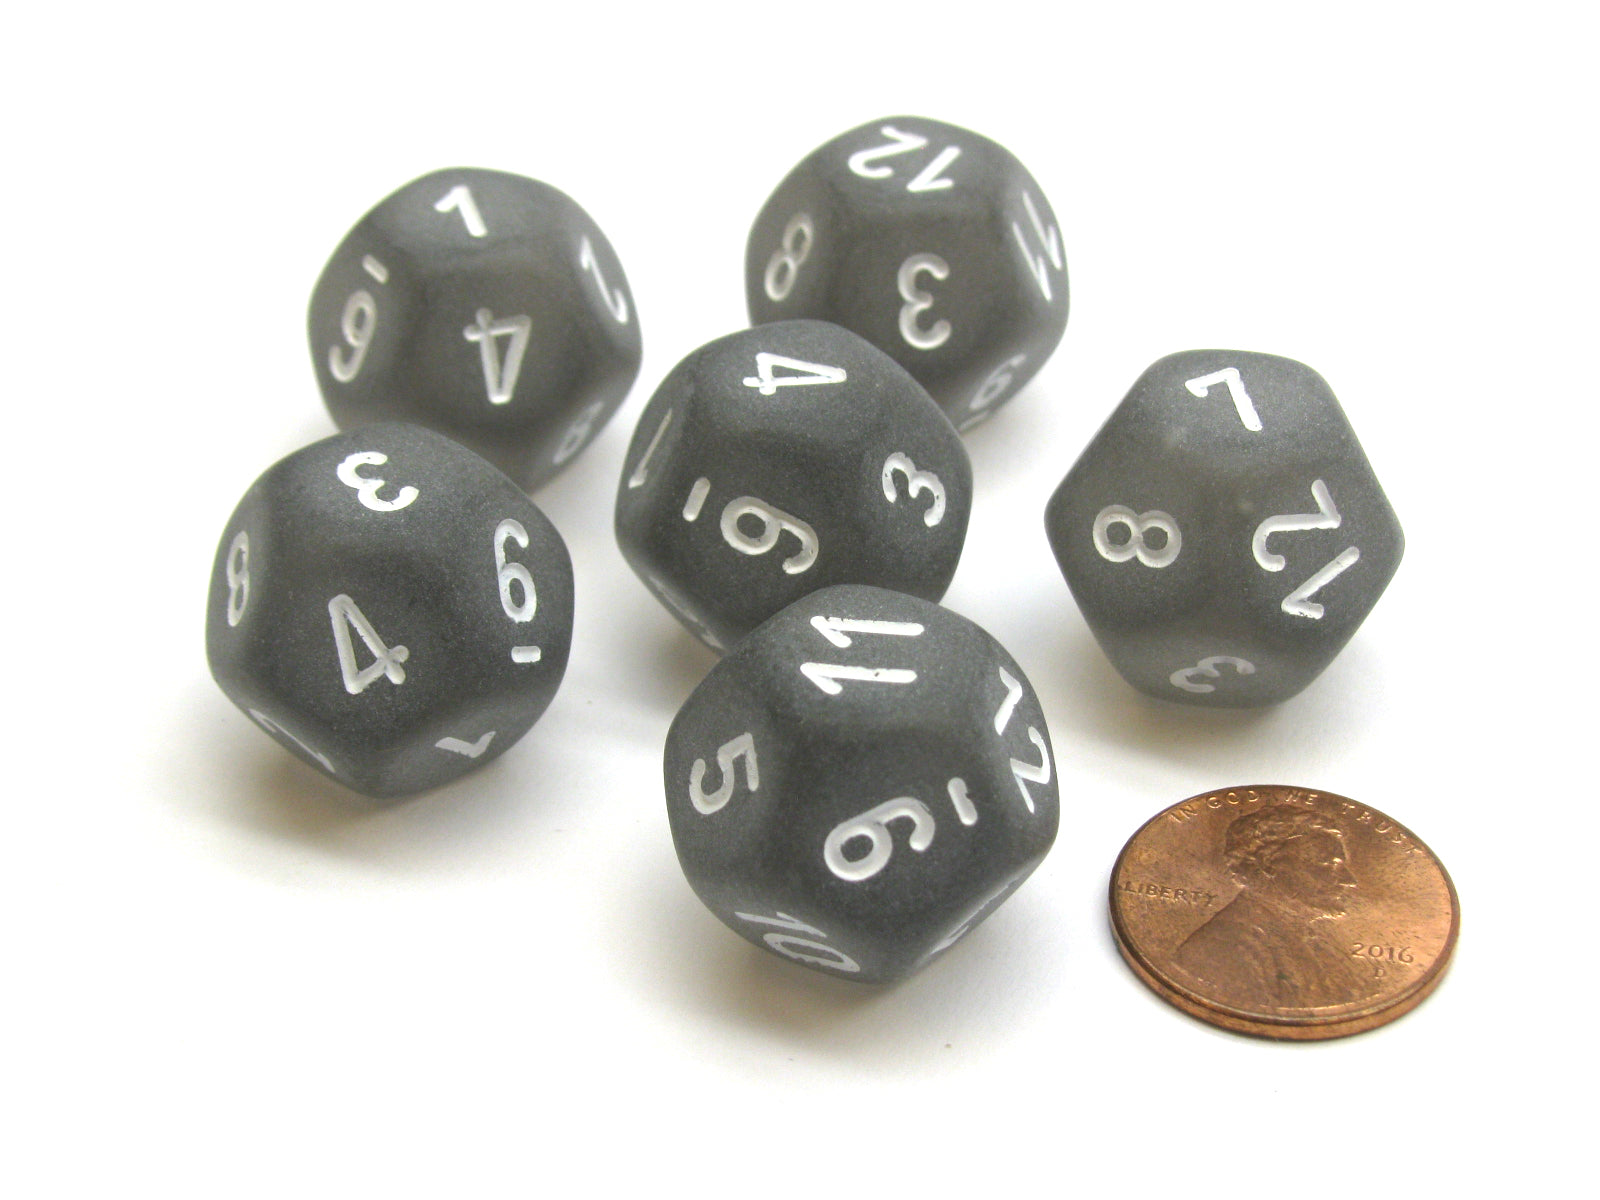 Frosted 18mm 12 Sided D12 Chessex Dice, 6 Pieces -  Smoke with White